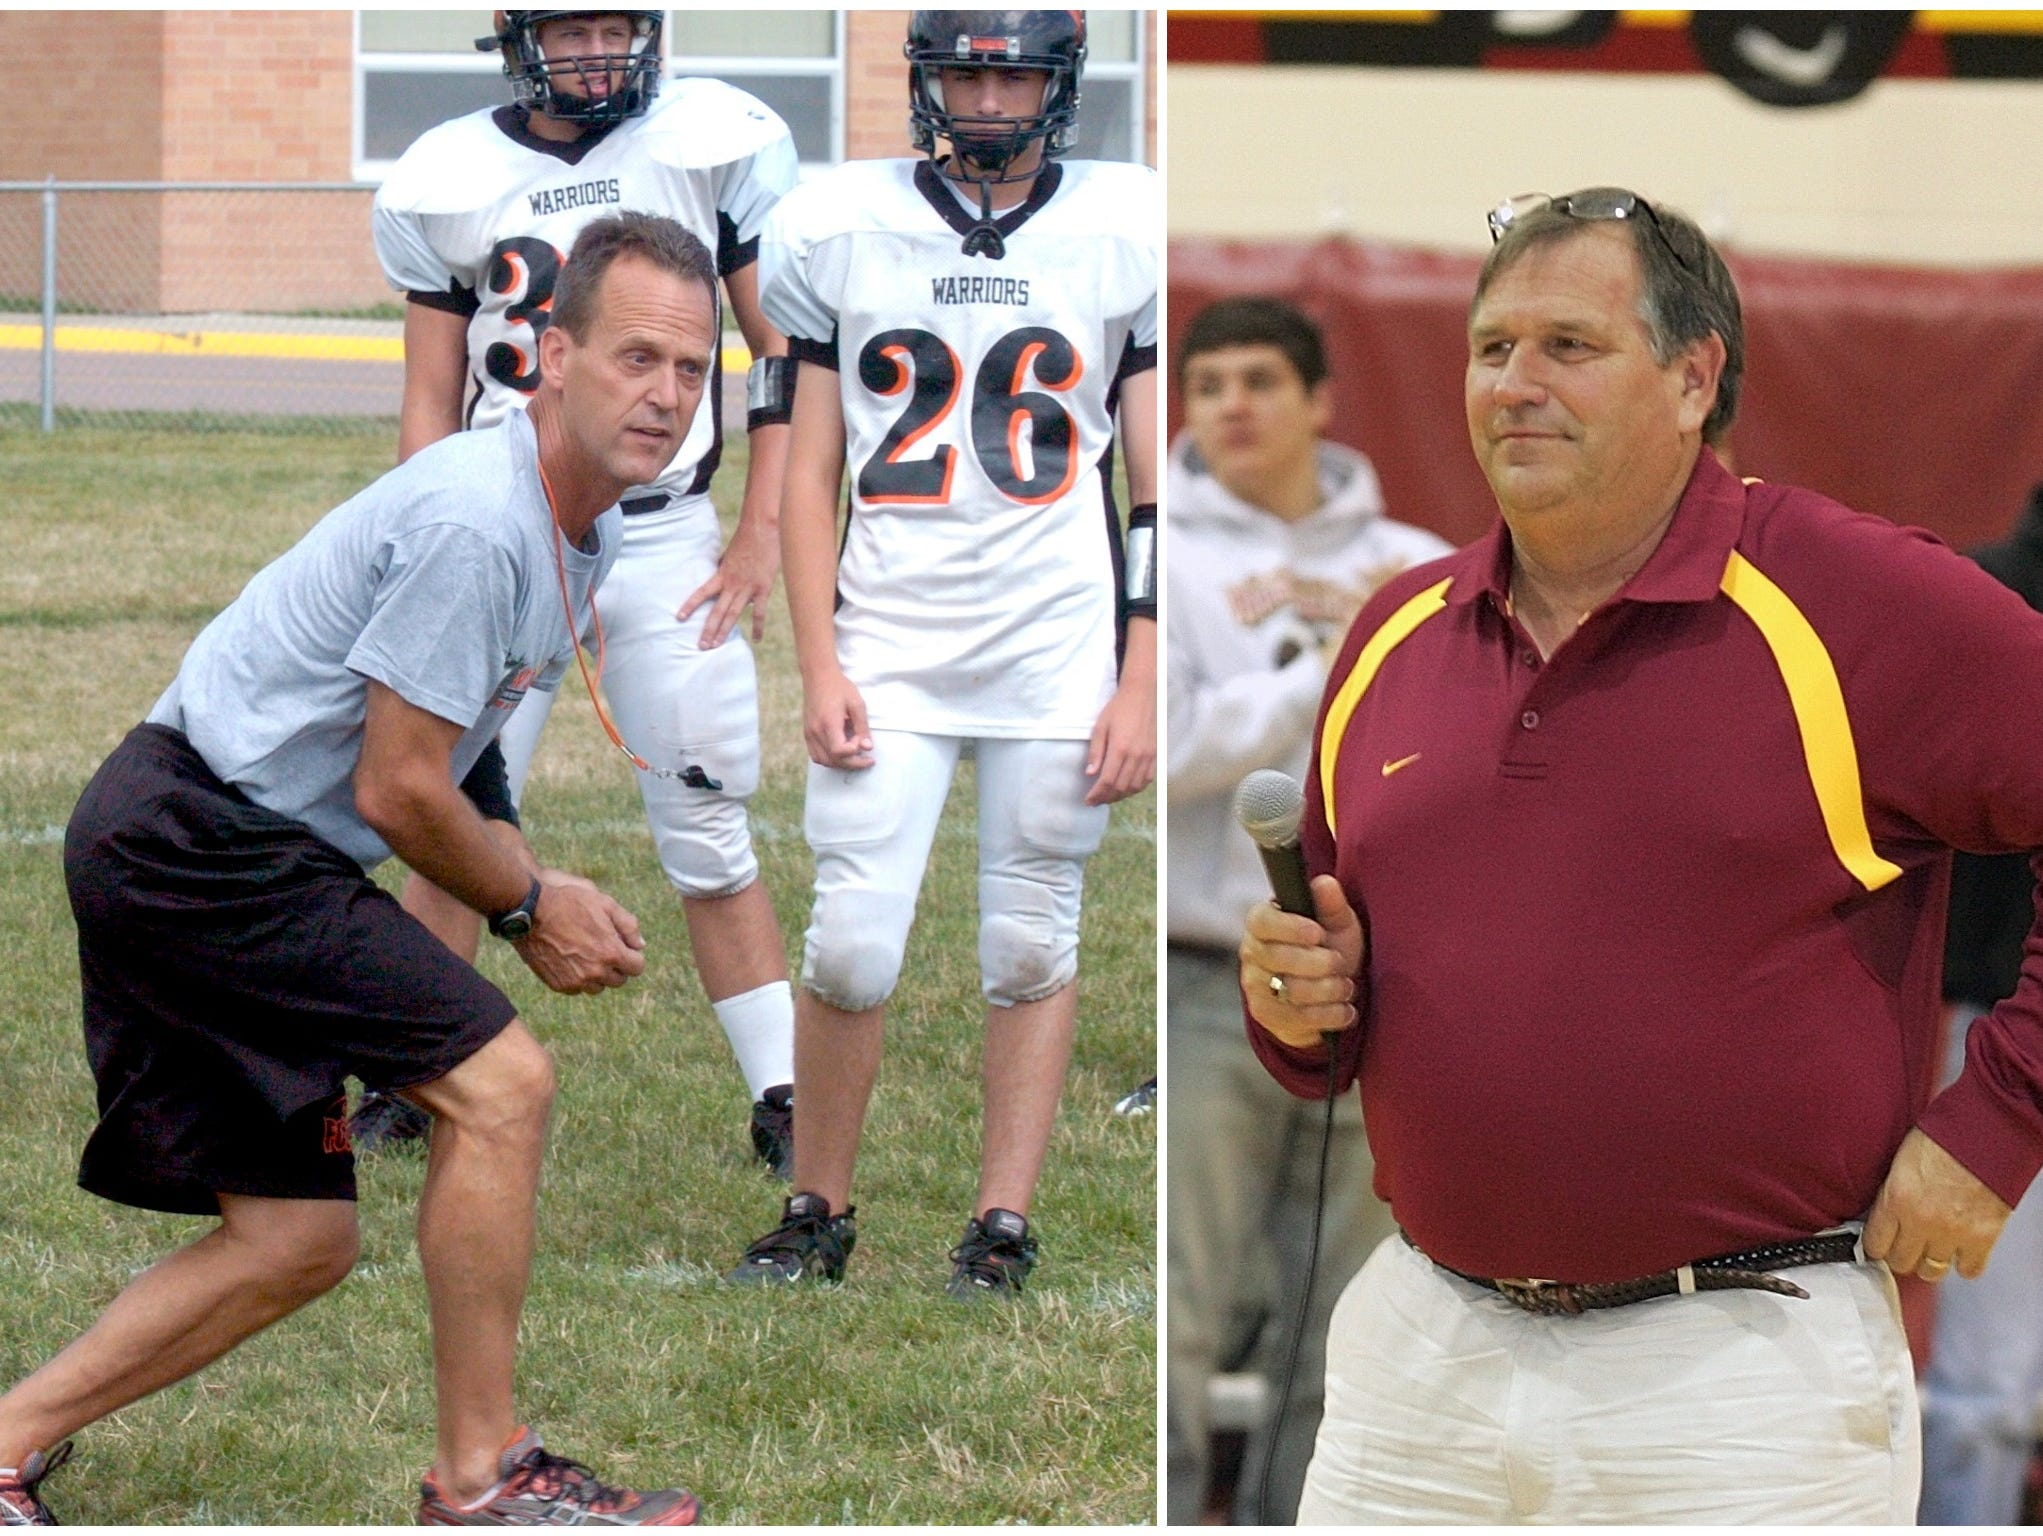 Former Washington High coach Brian Hermanson (left) and Roosevelt's Brent DeBoer will join the SDFBCA hall of fame for the 2016 class.